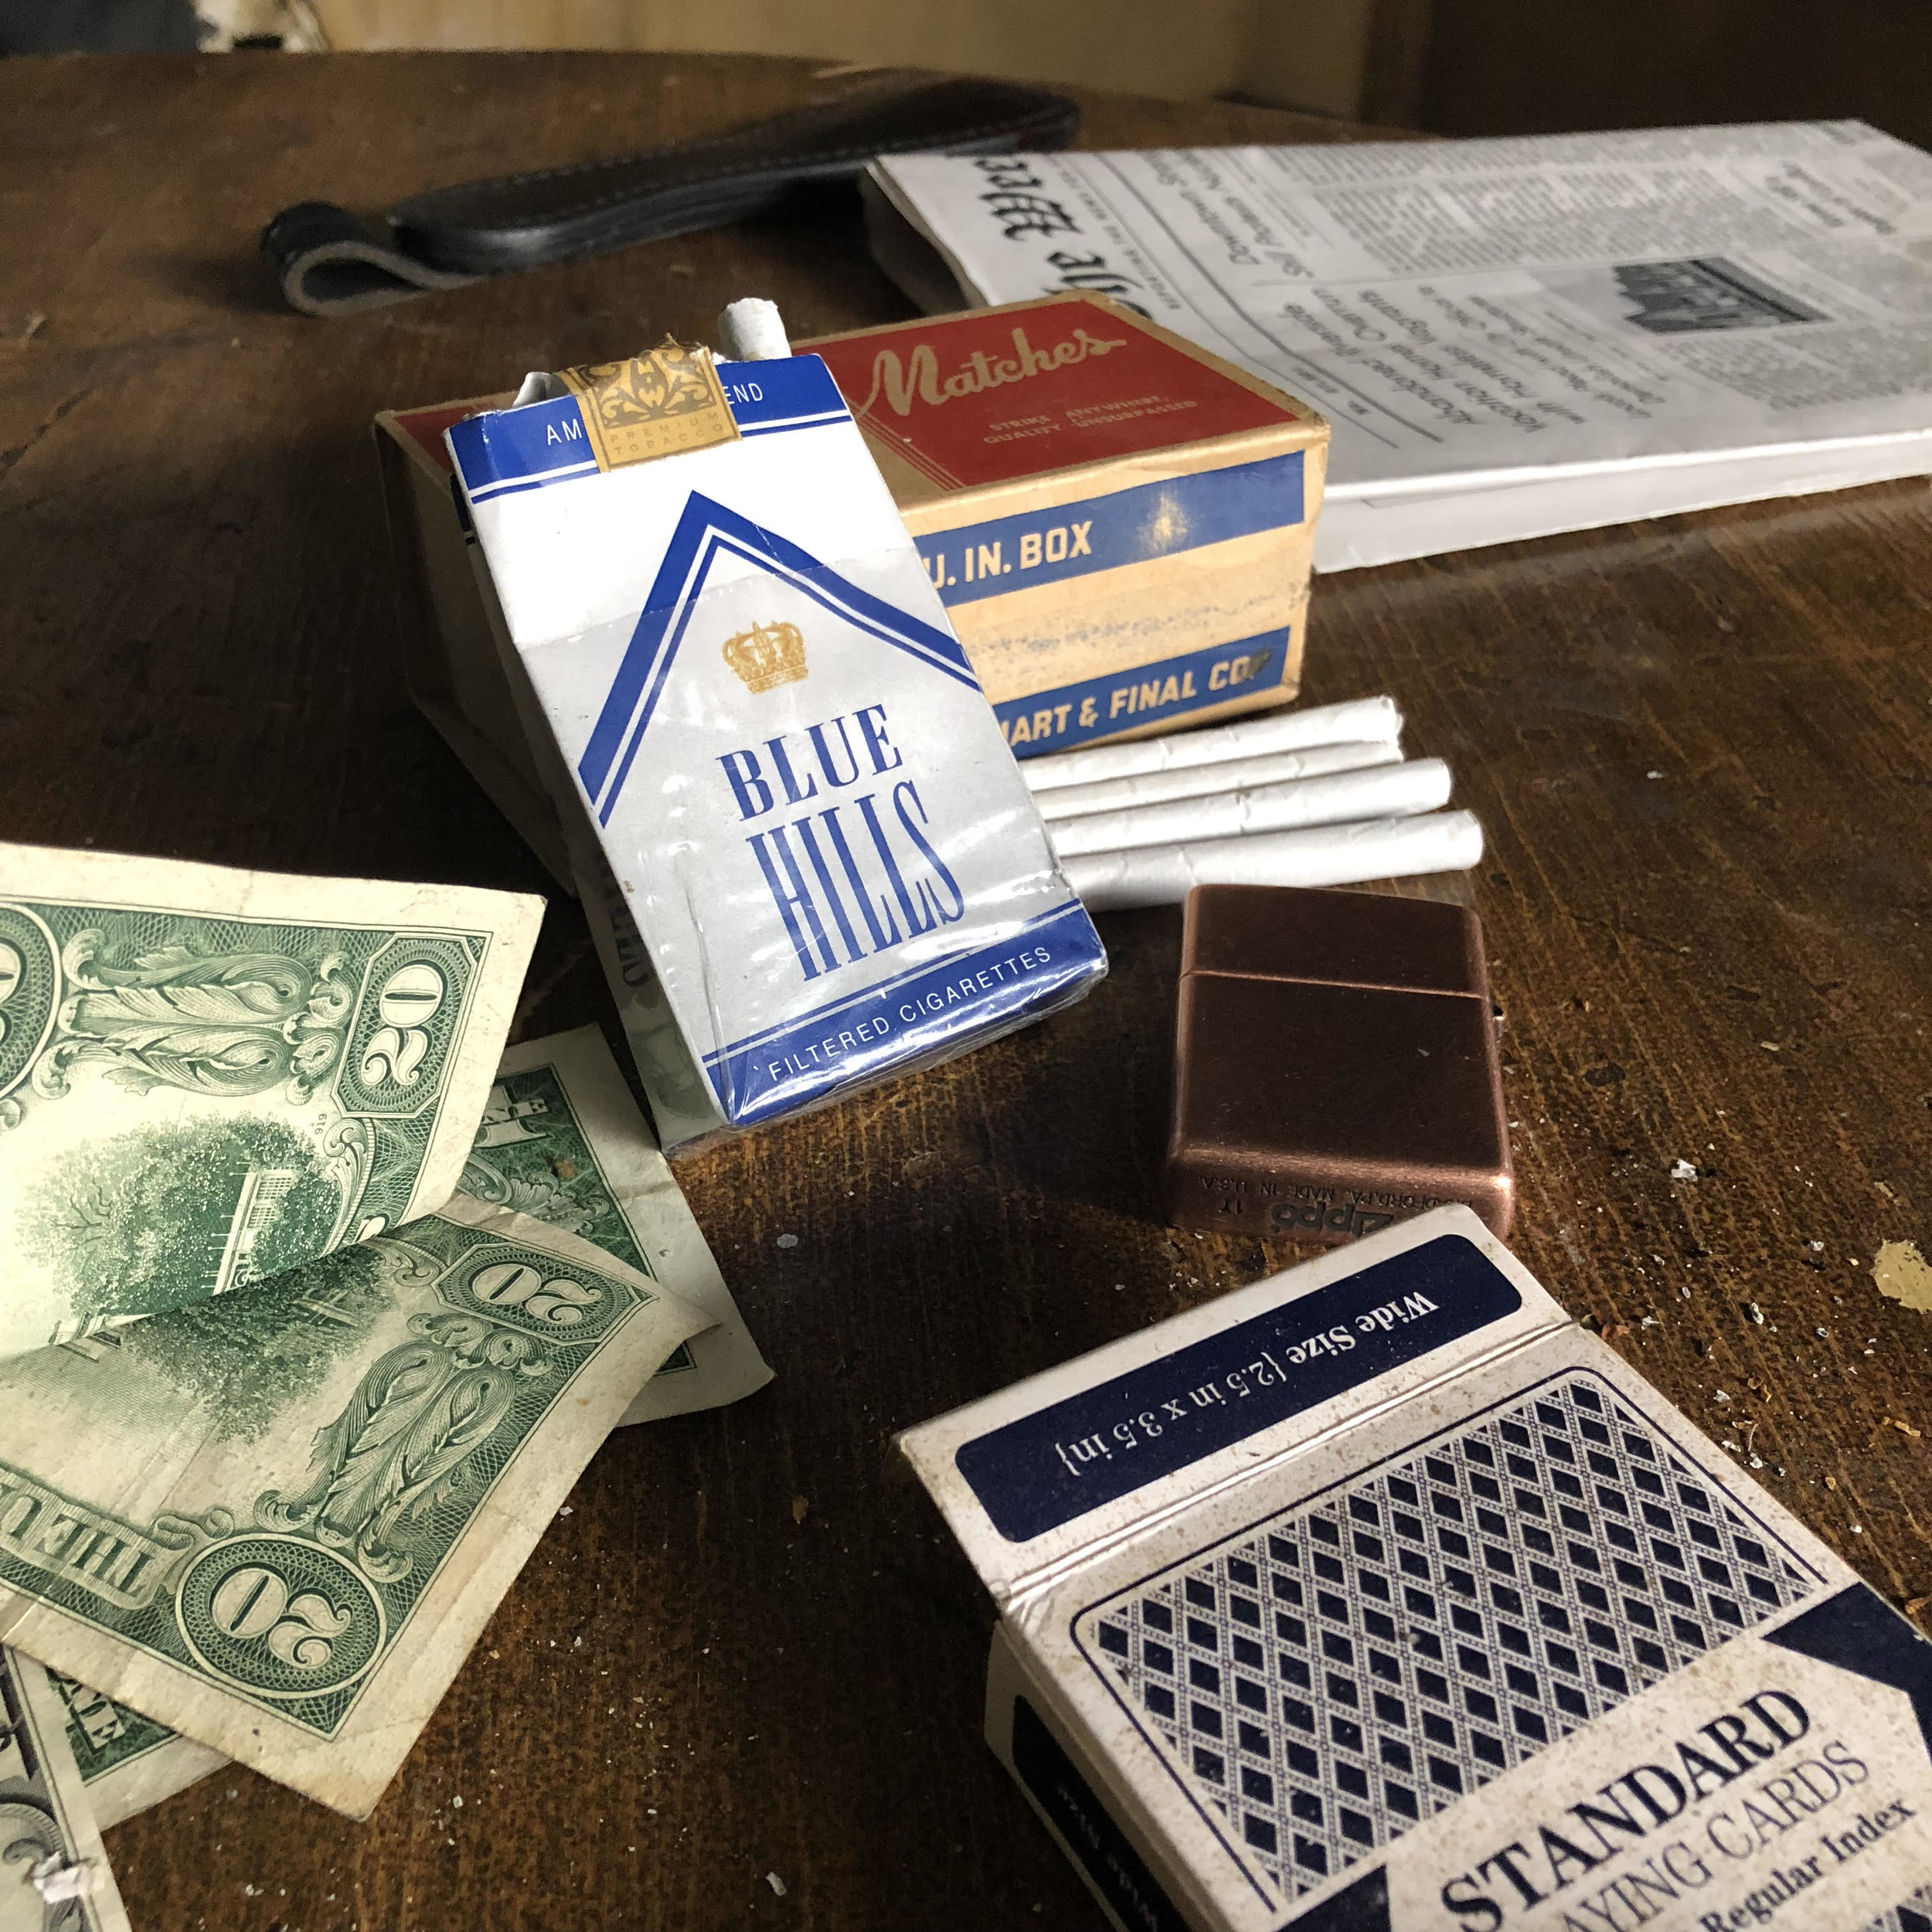 Cigarettes, cards and money - Ellroy essentials.   Photo courtesy Drew Powell